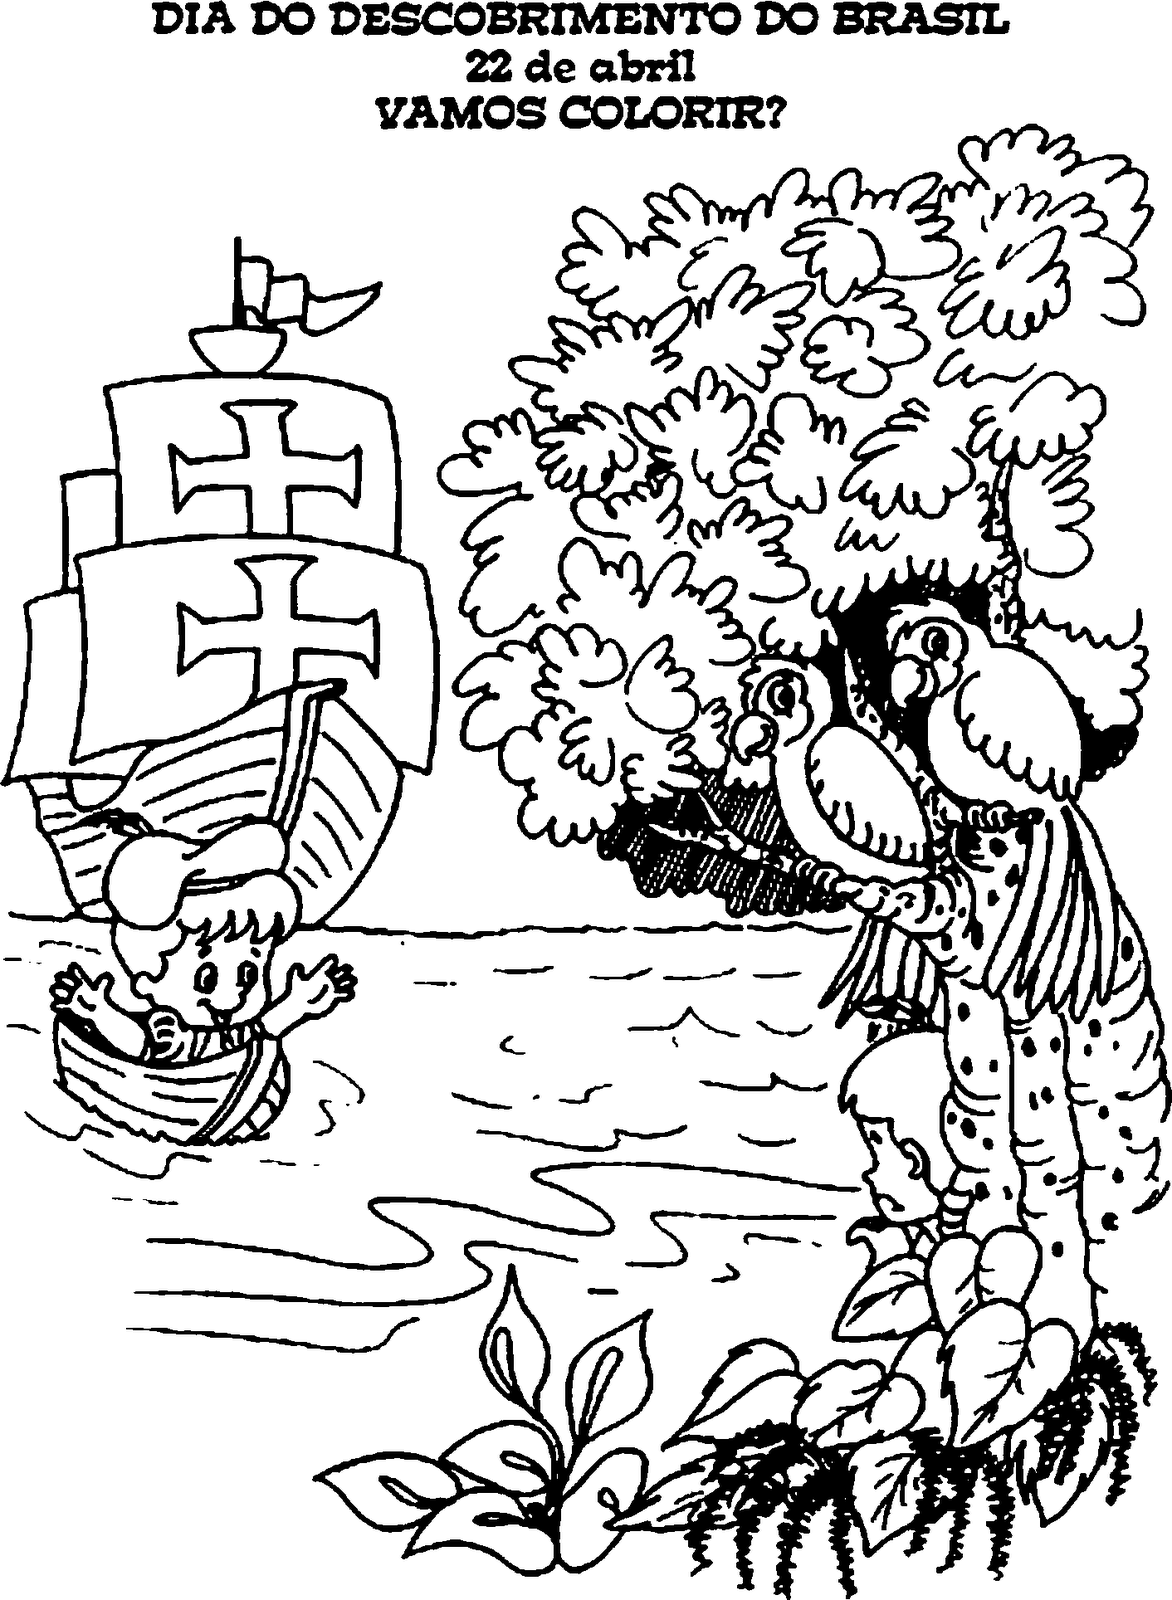 taba coloring pages - photo#22